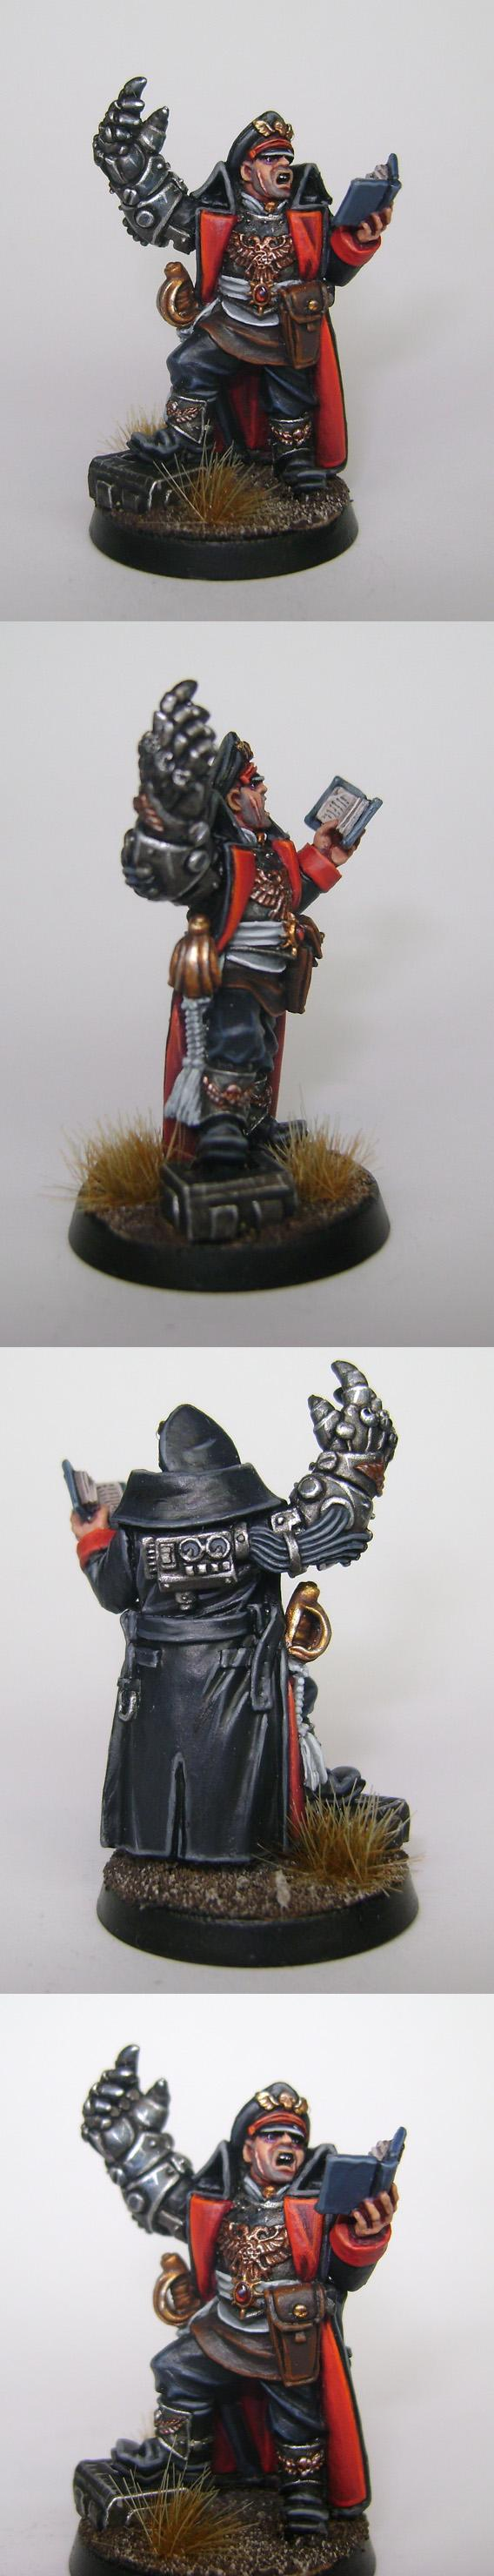 Commissar, Imperial Guard, Warhammer 40,000